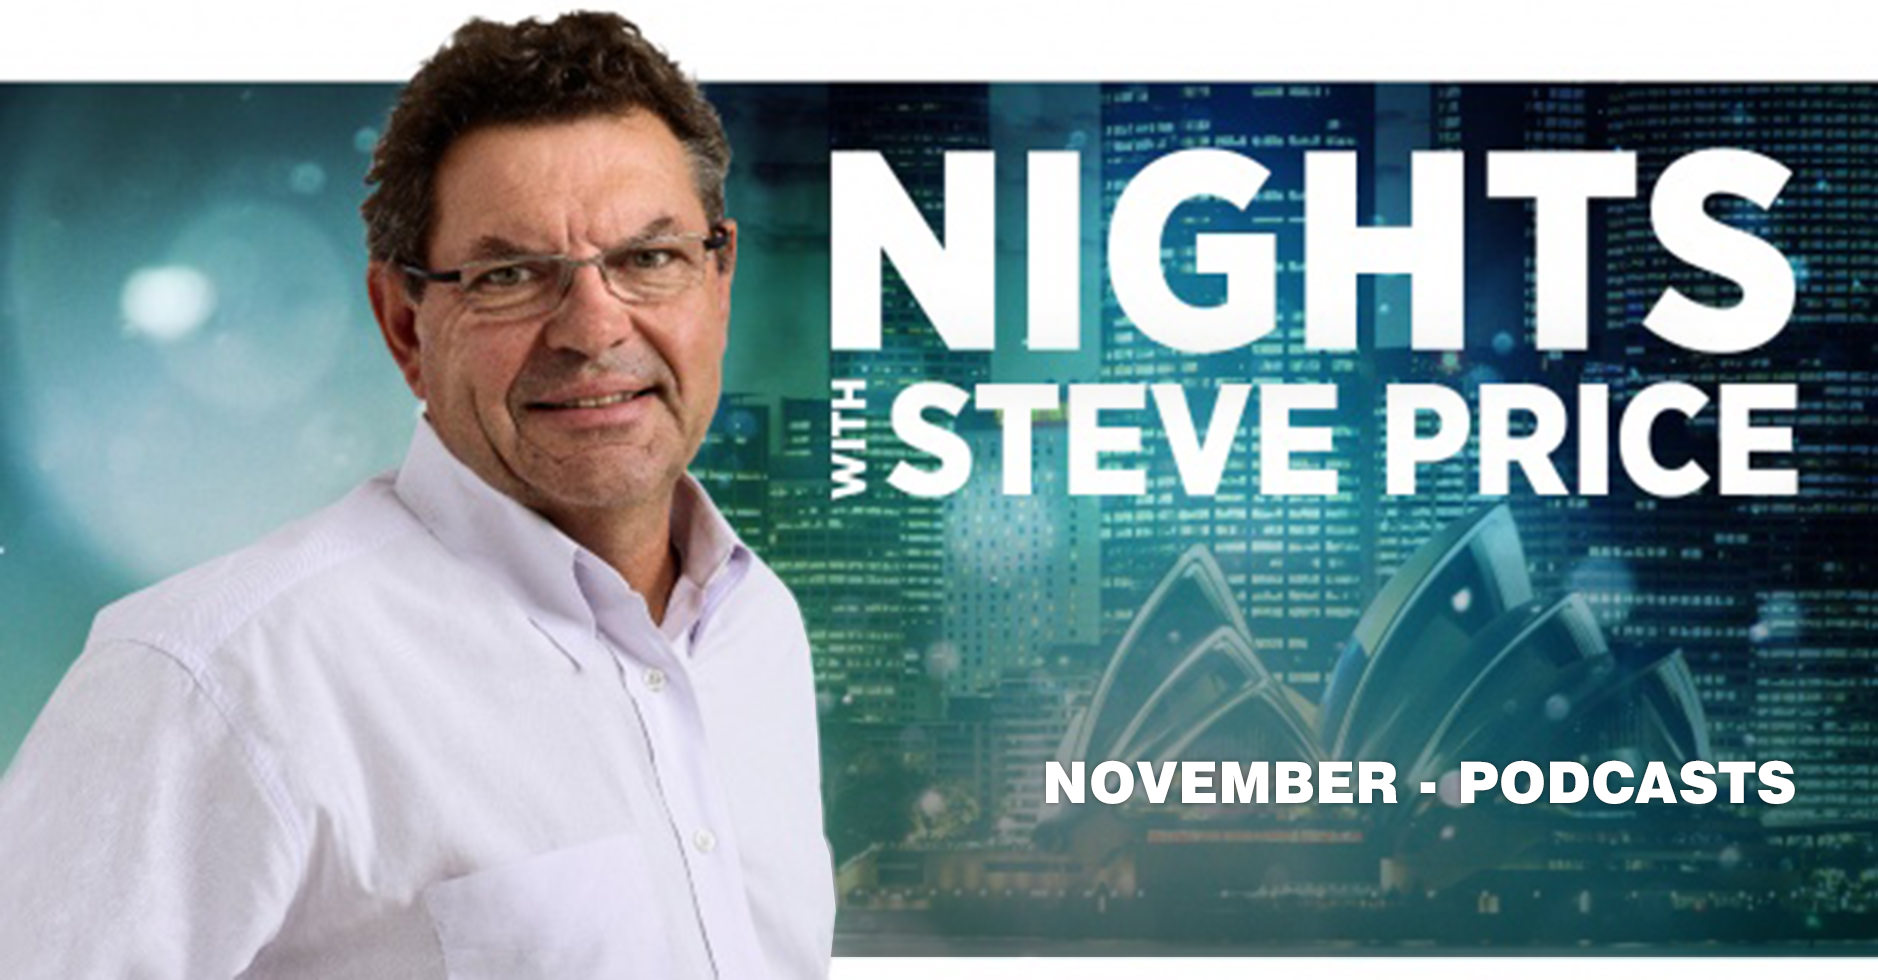 Nights StevePrice Hero November The Informed Investor: December 2017 Podcast